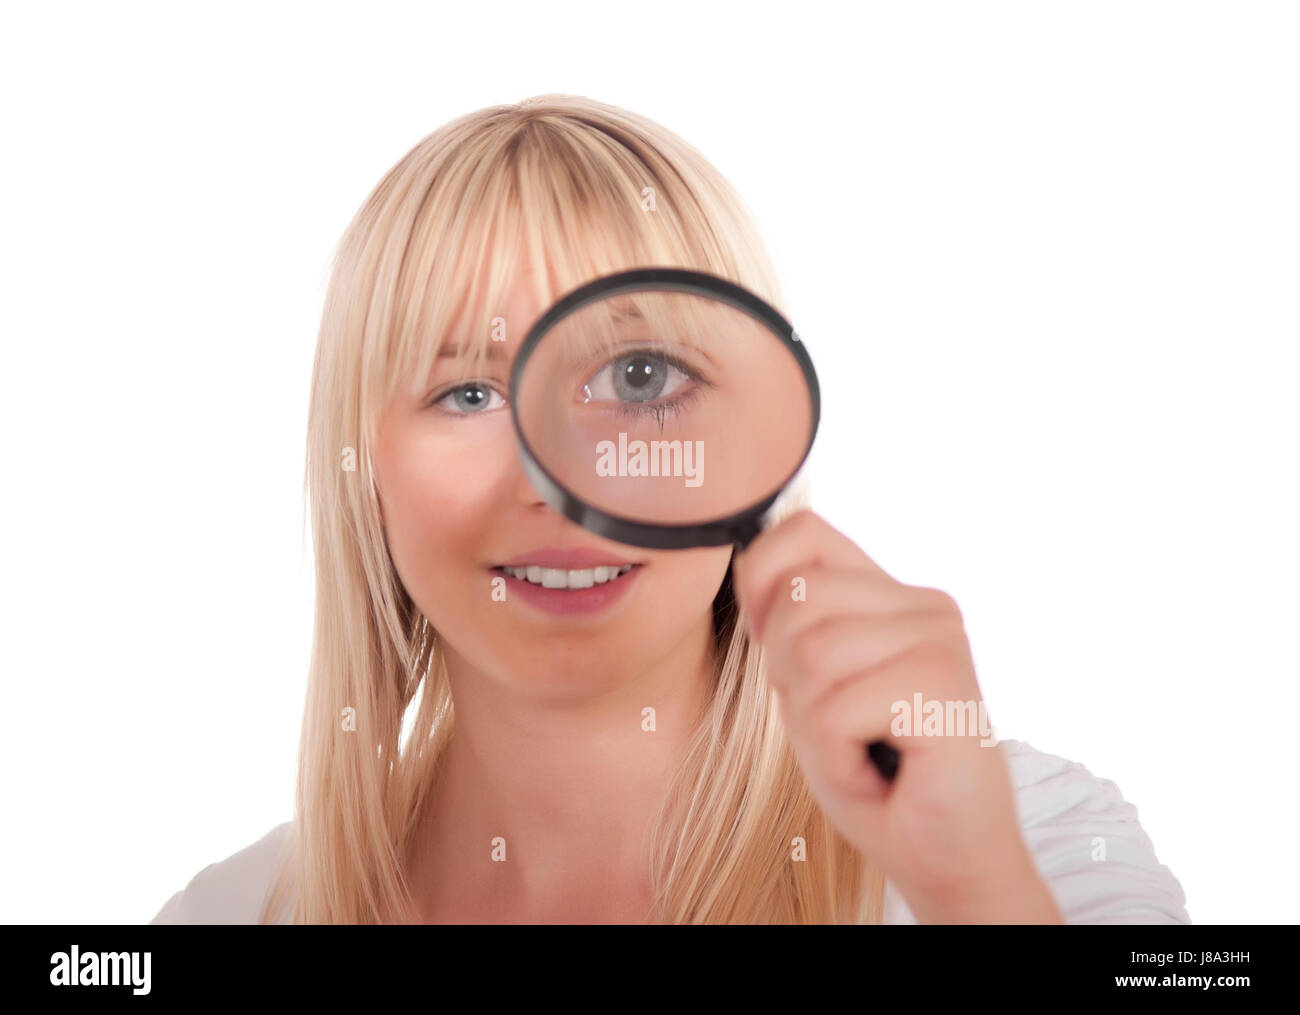 young blonde woman with magnifying glass Stock Photo